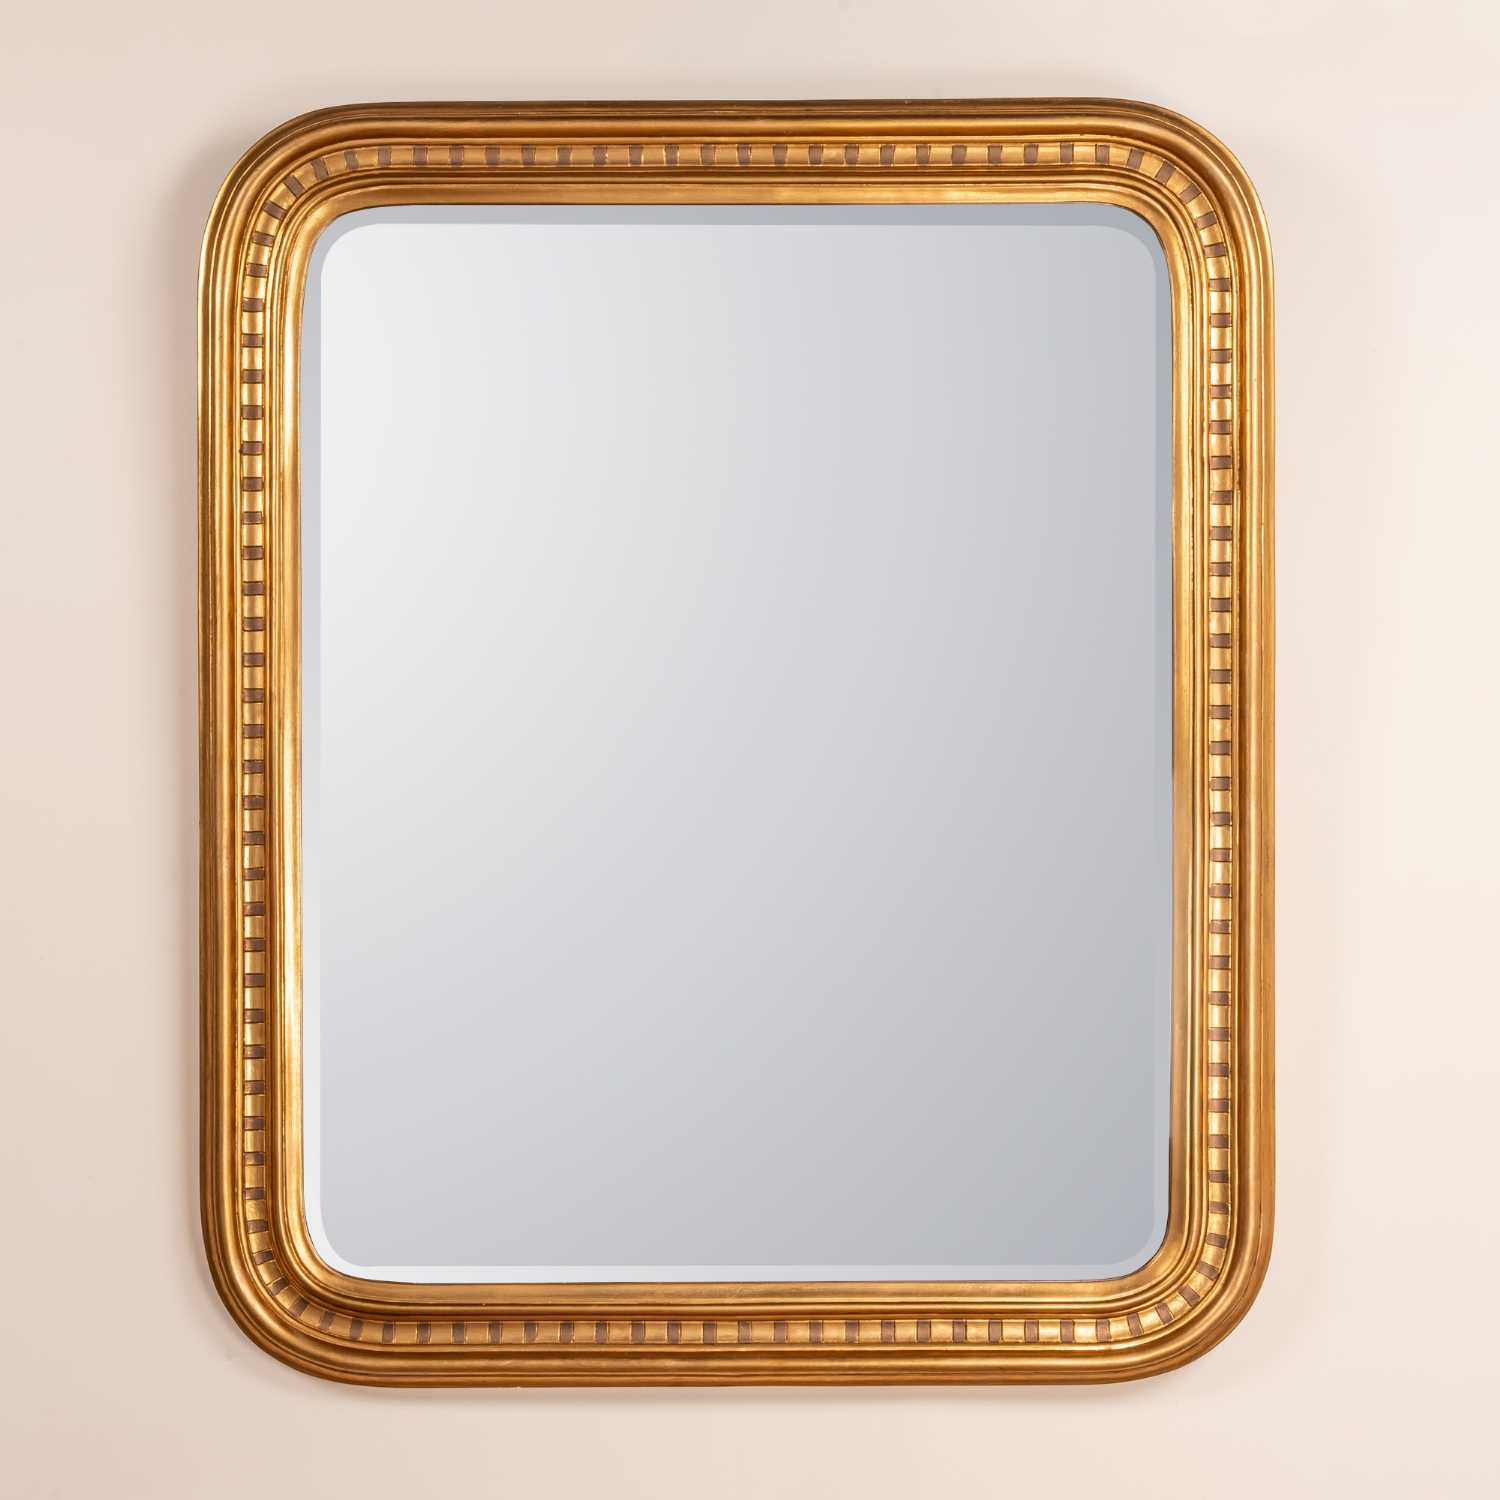 Louis Philippe Gold Etched Gilt Leaf Overmantel Bevelled Mirror